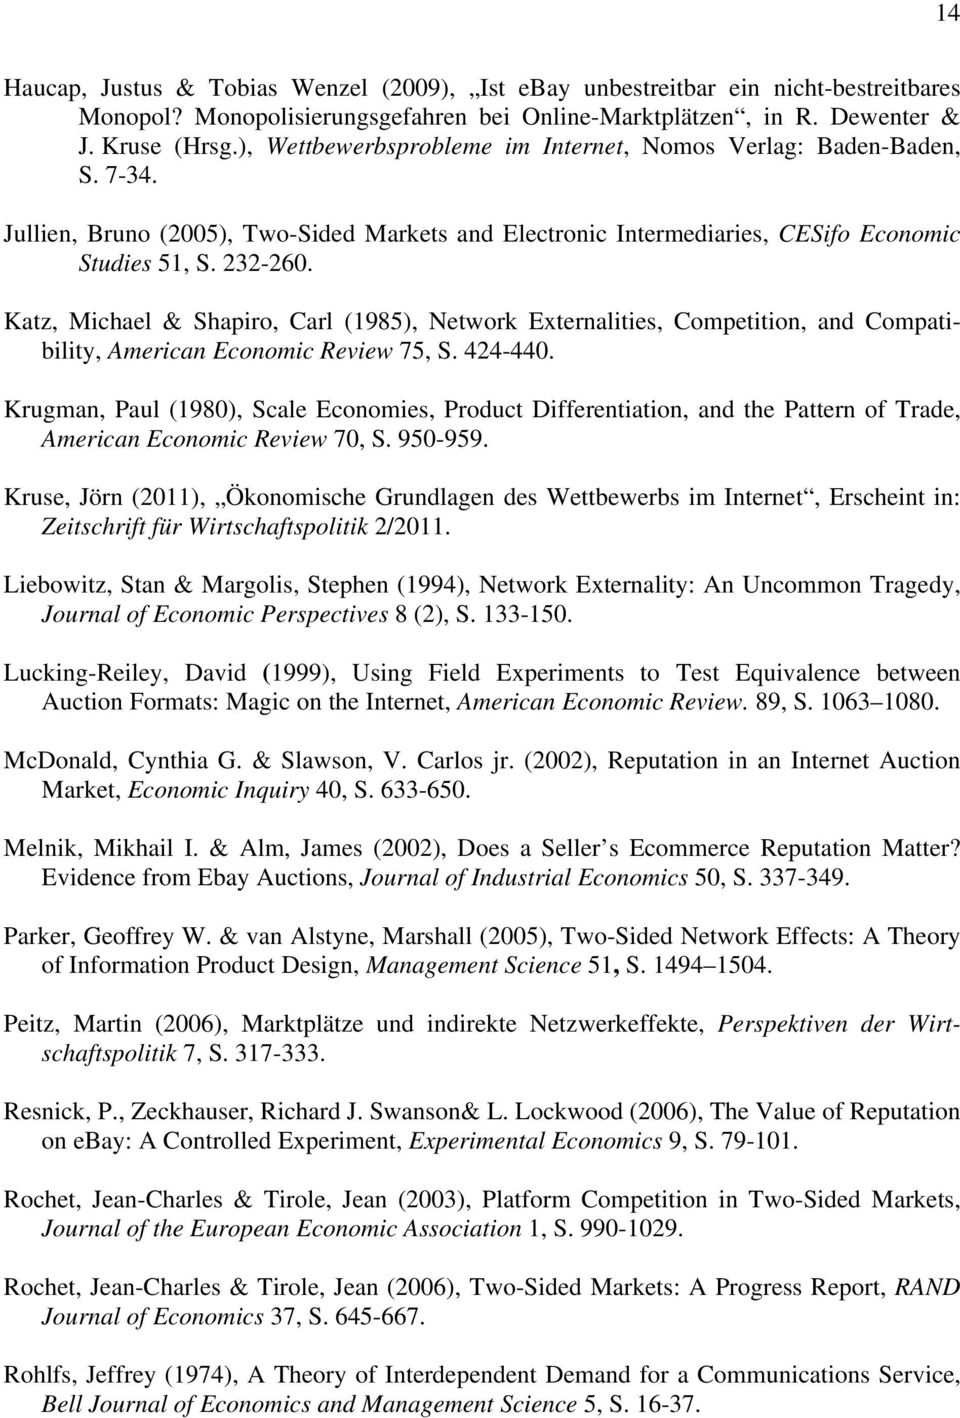 Katz, Michael & Shapiro, Carl (1985), Network Externalities, Competition, and Compatibility, American Economic Review 75, S. 424-440.